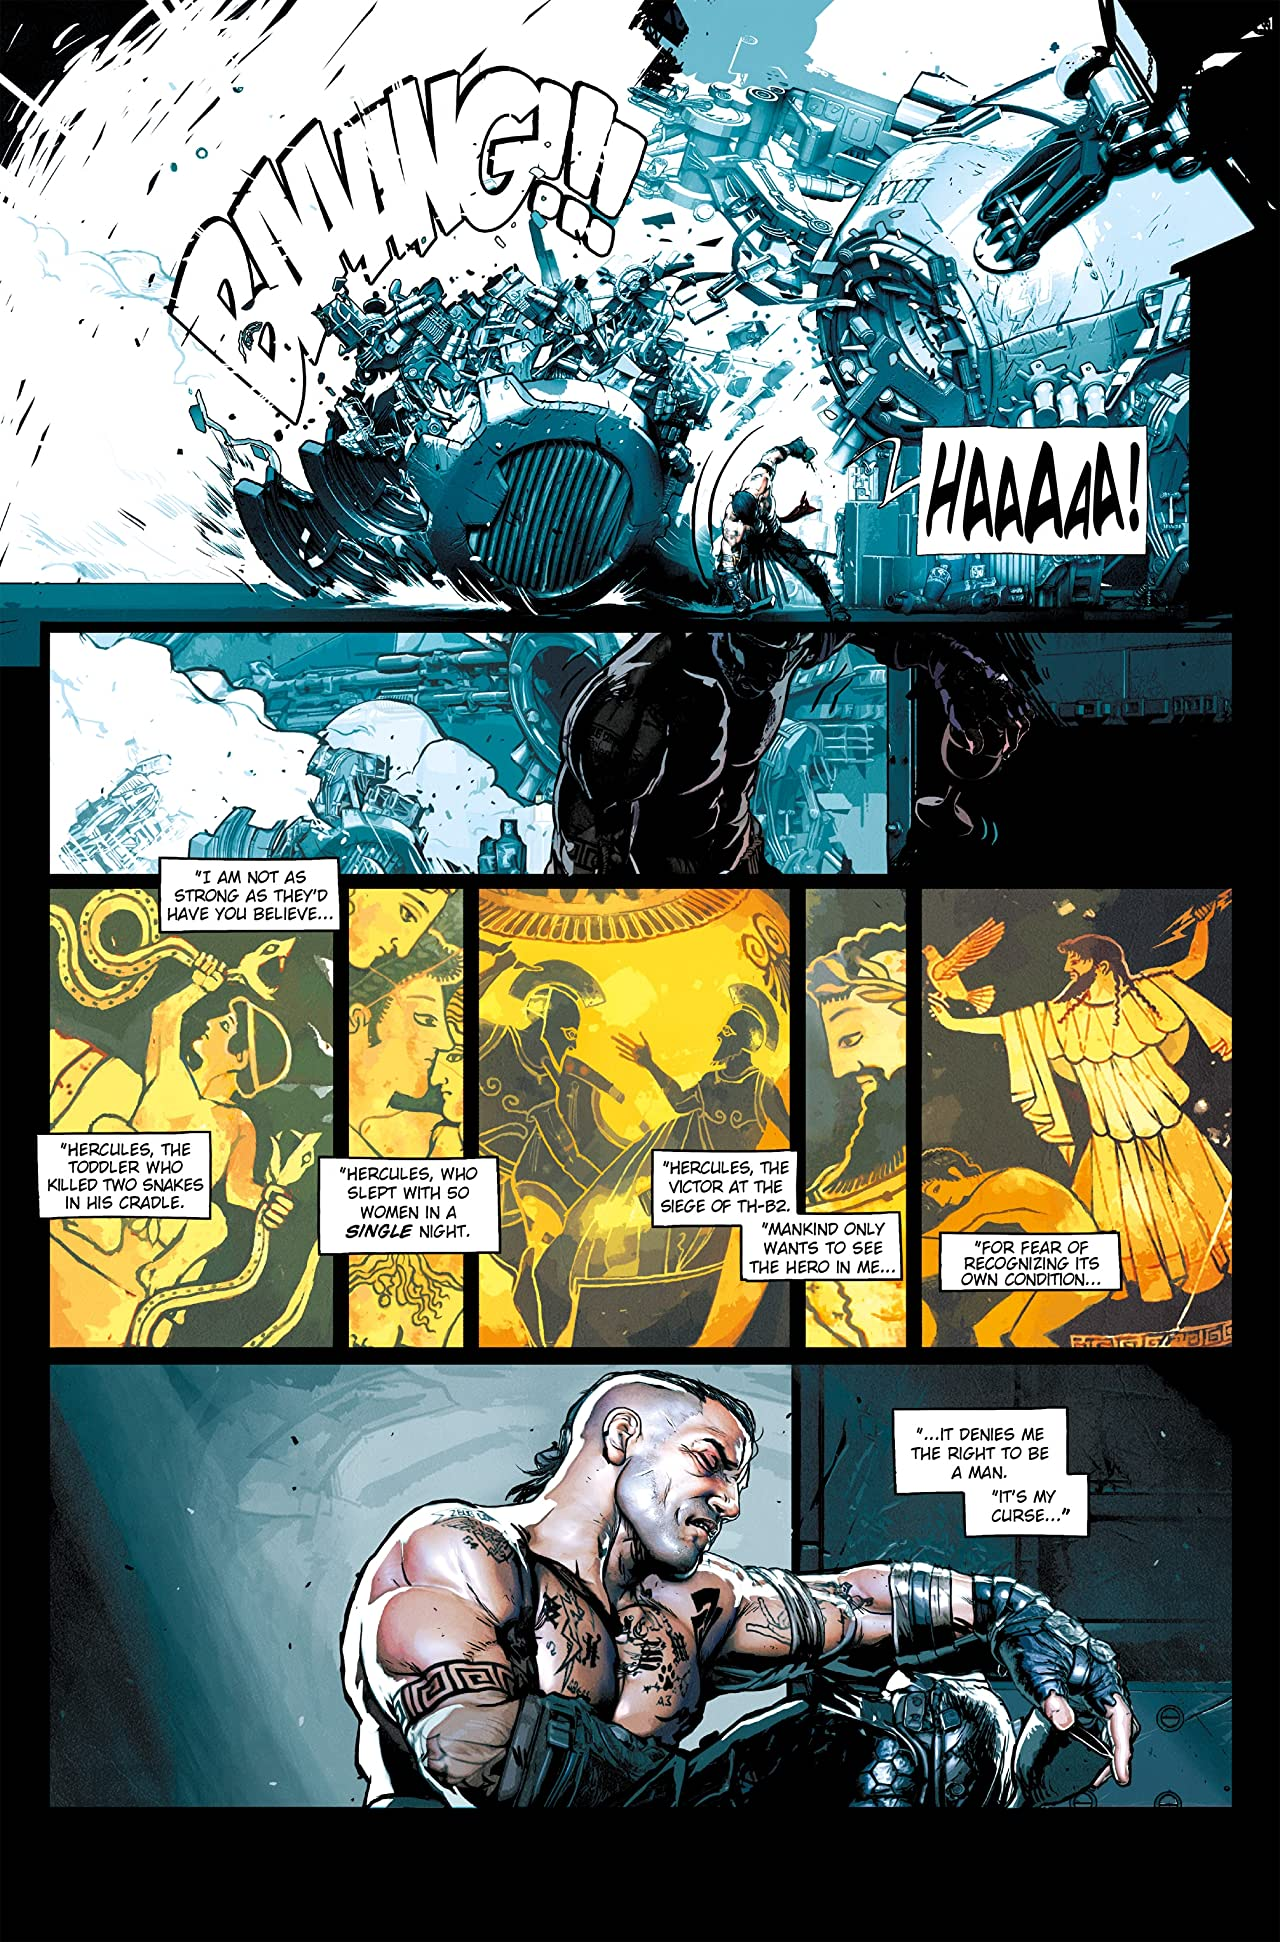 Hercules: The Wrath of the Heavens #1